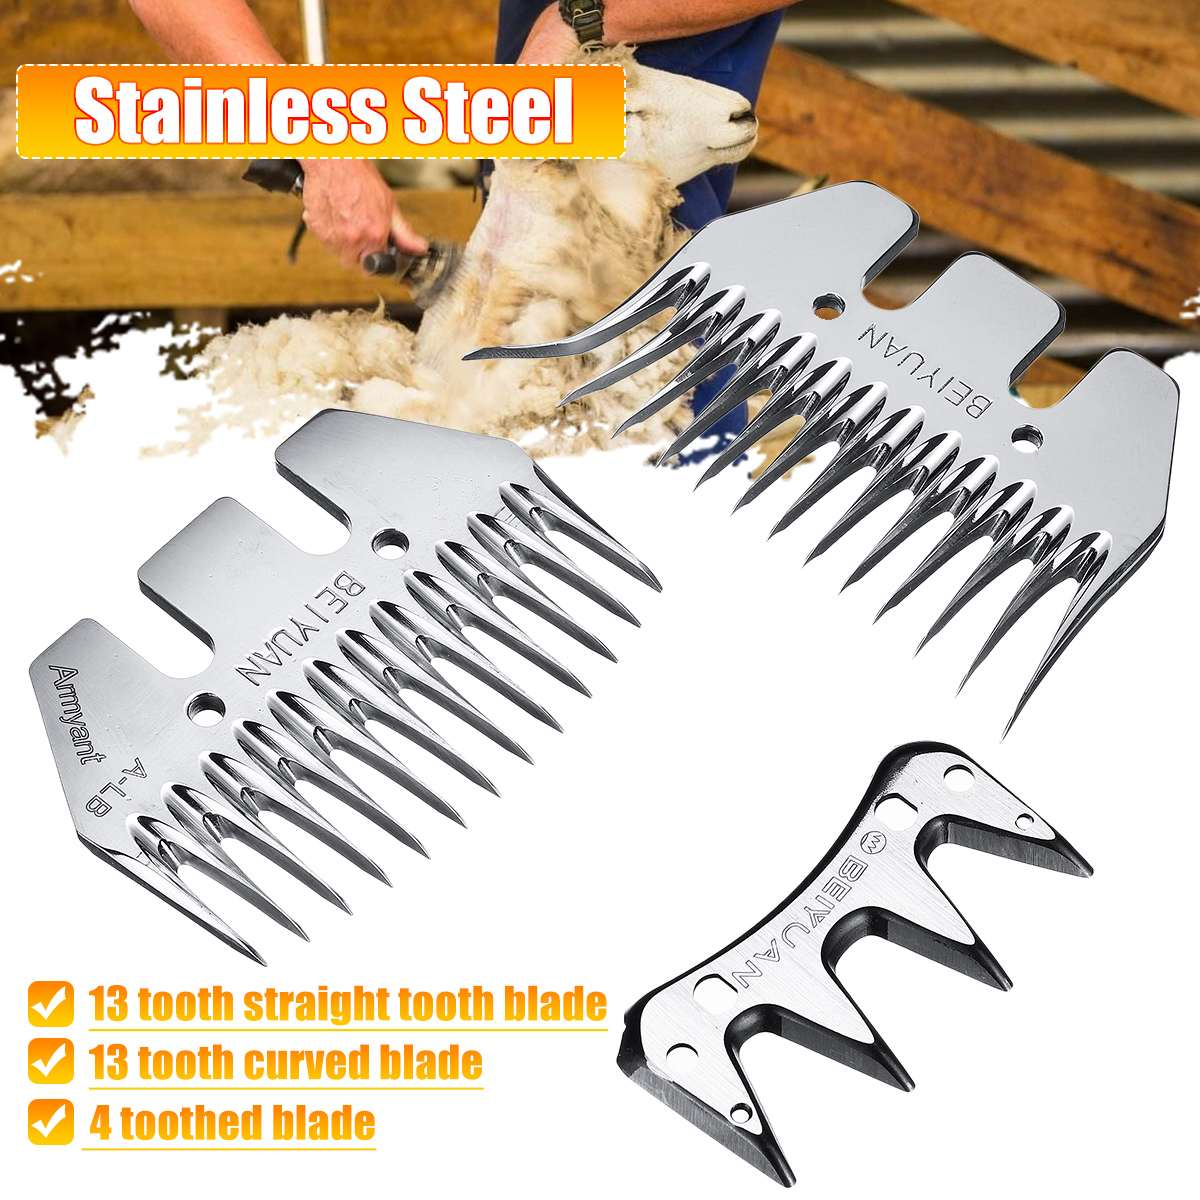 Sheep Goats Shears Convex Comb Cutter Shearing Clipper 4/13 Tooth Blade For Sheep Clipper Shears Scissors